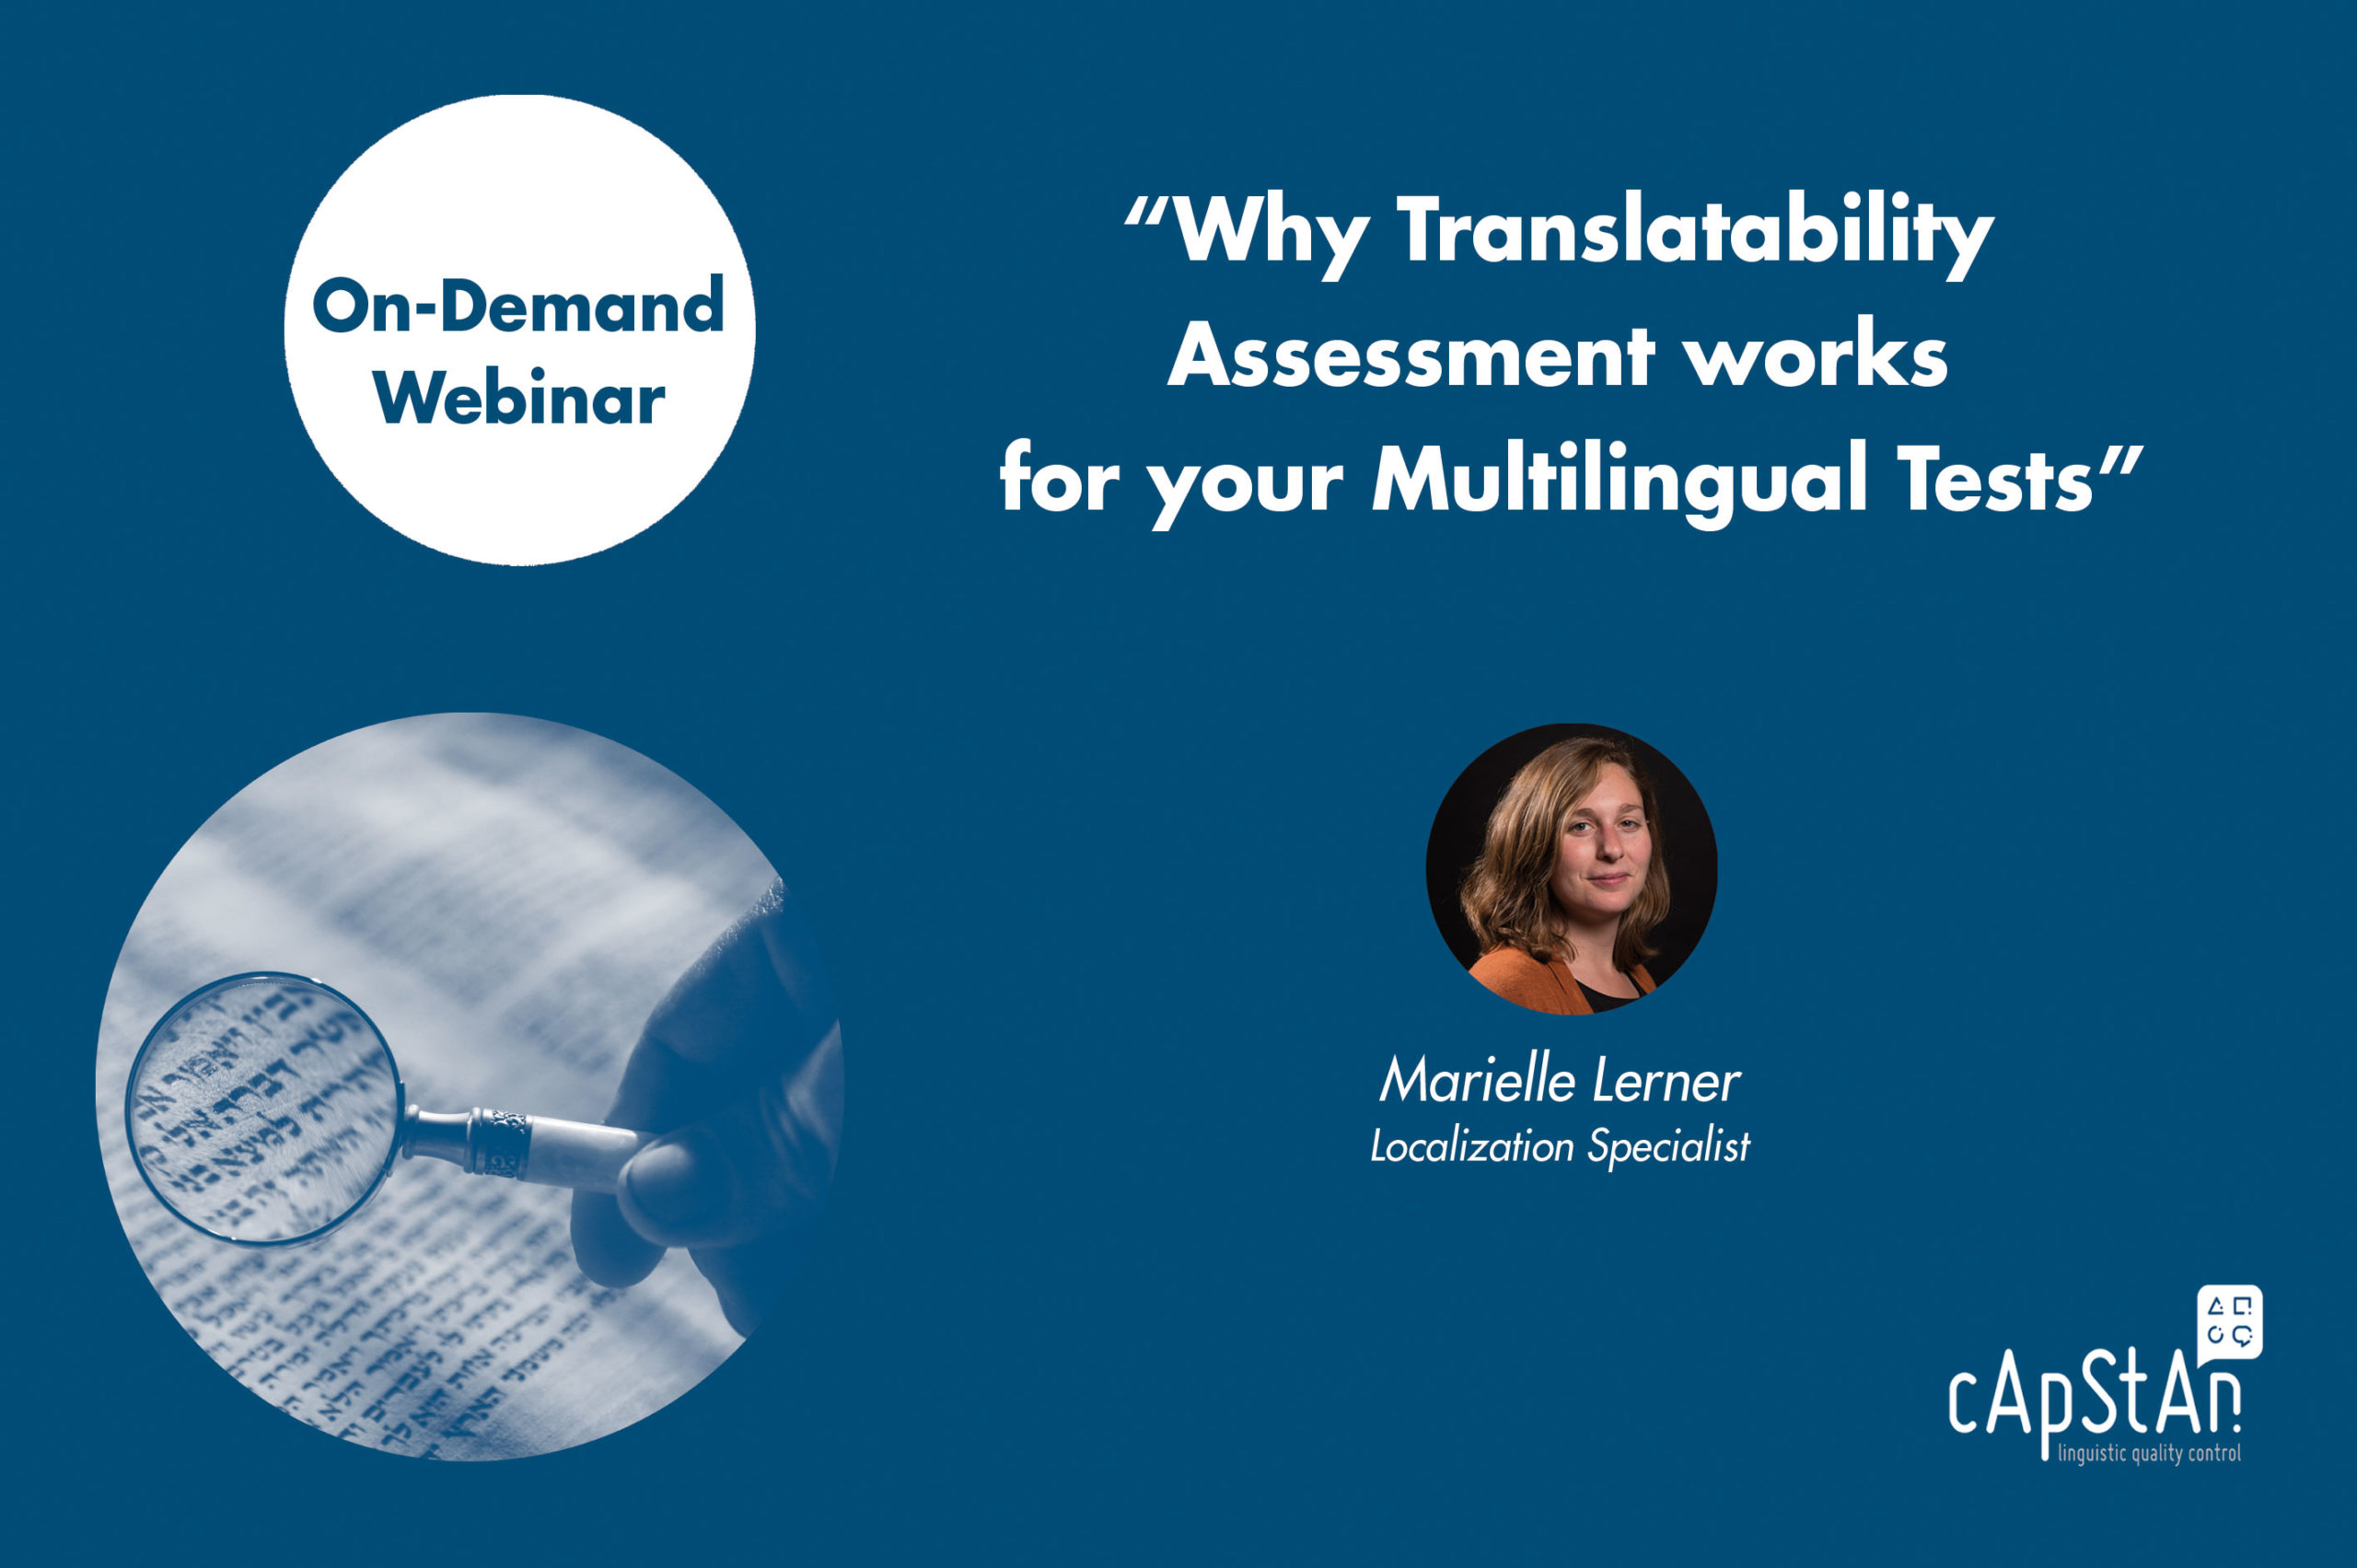 On-Demand Webinar | Why Translatability Assessment works for your Multilingual Tests